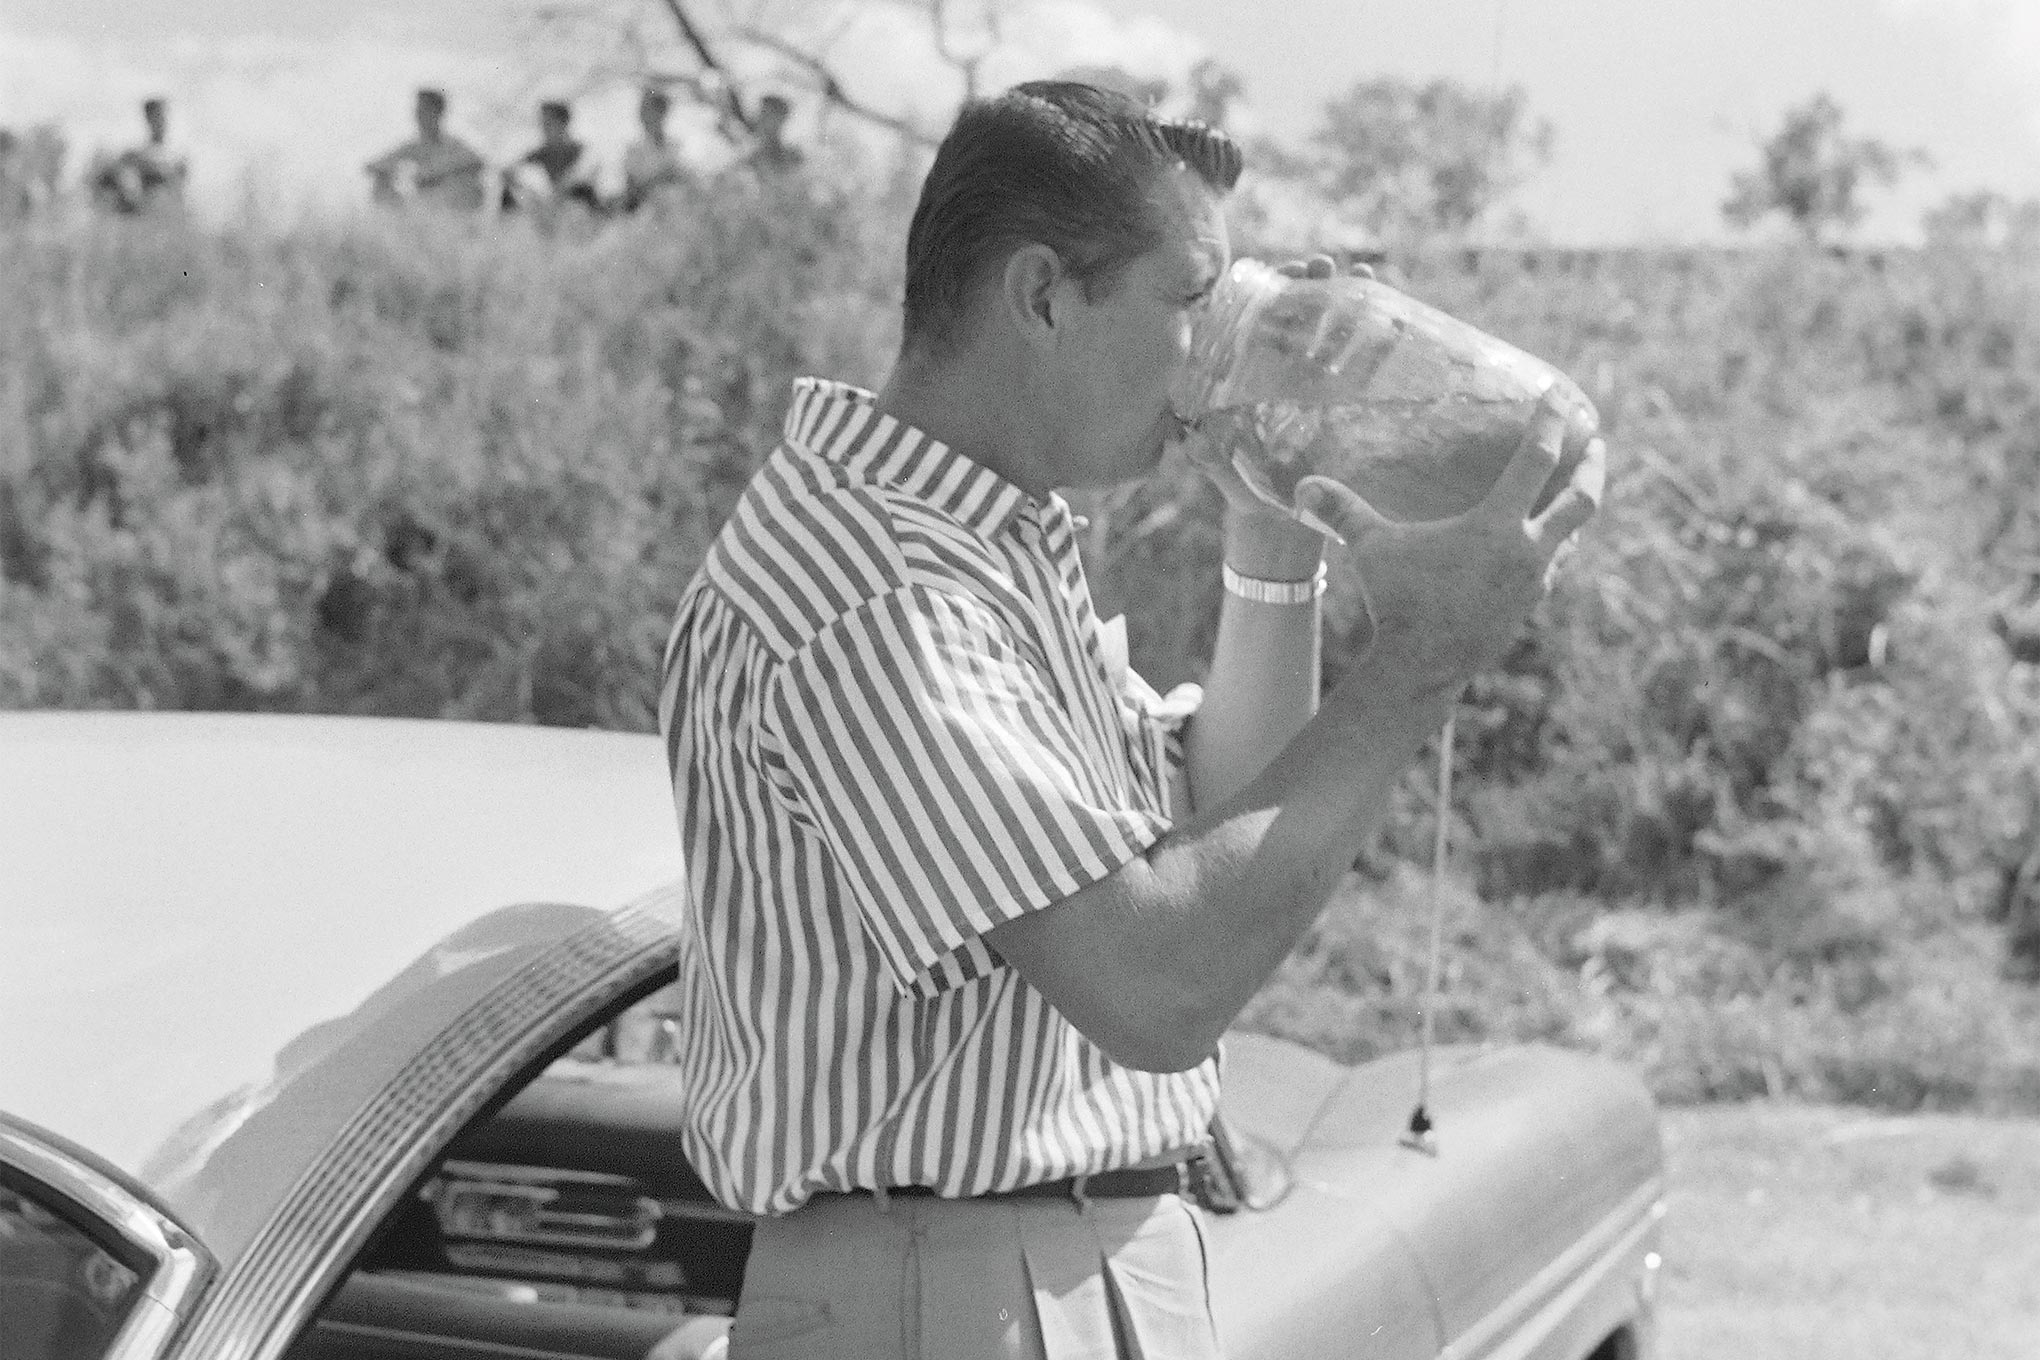 You'd need a drink, too, if you had a year like this guy's 1957!